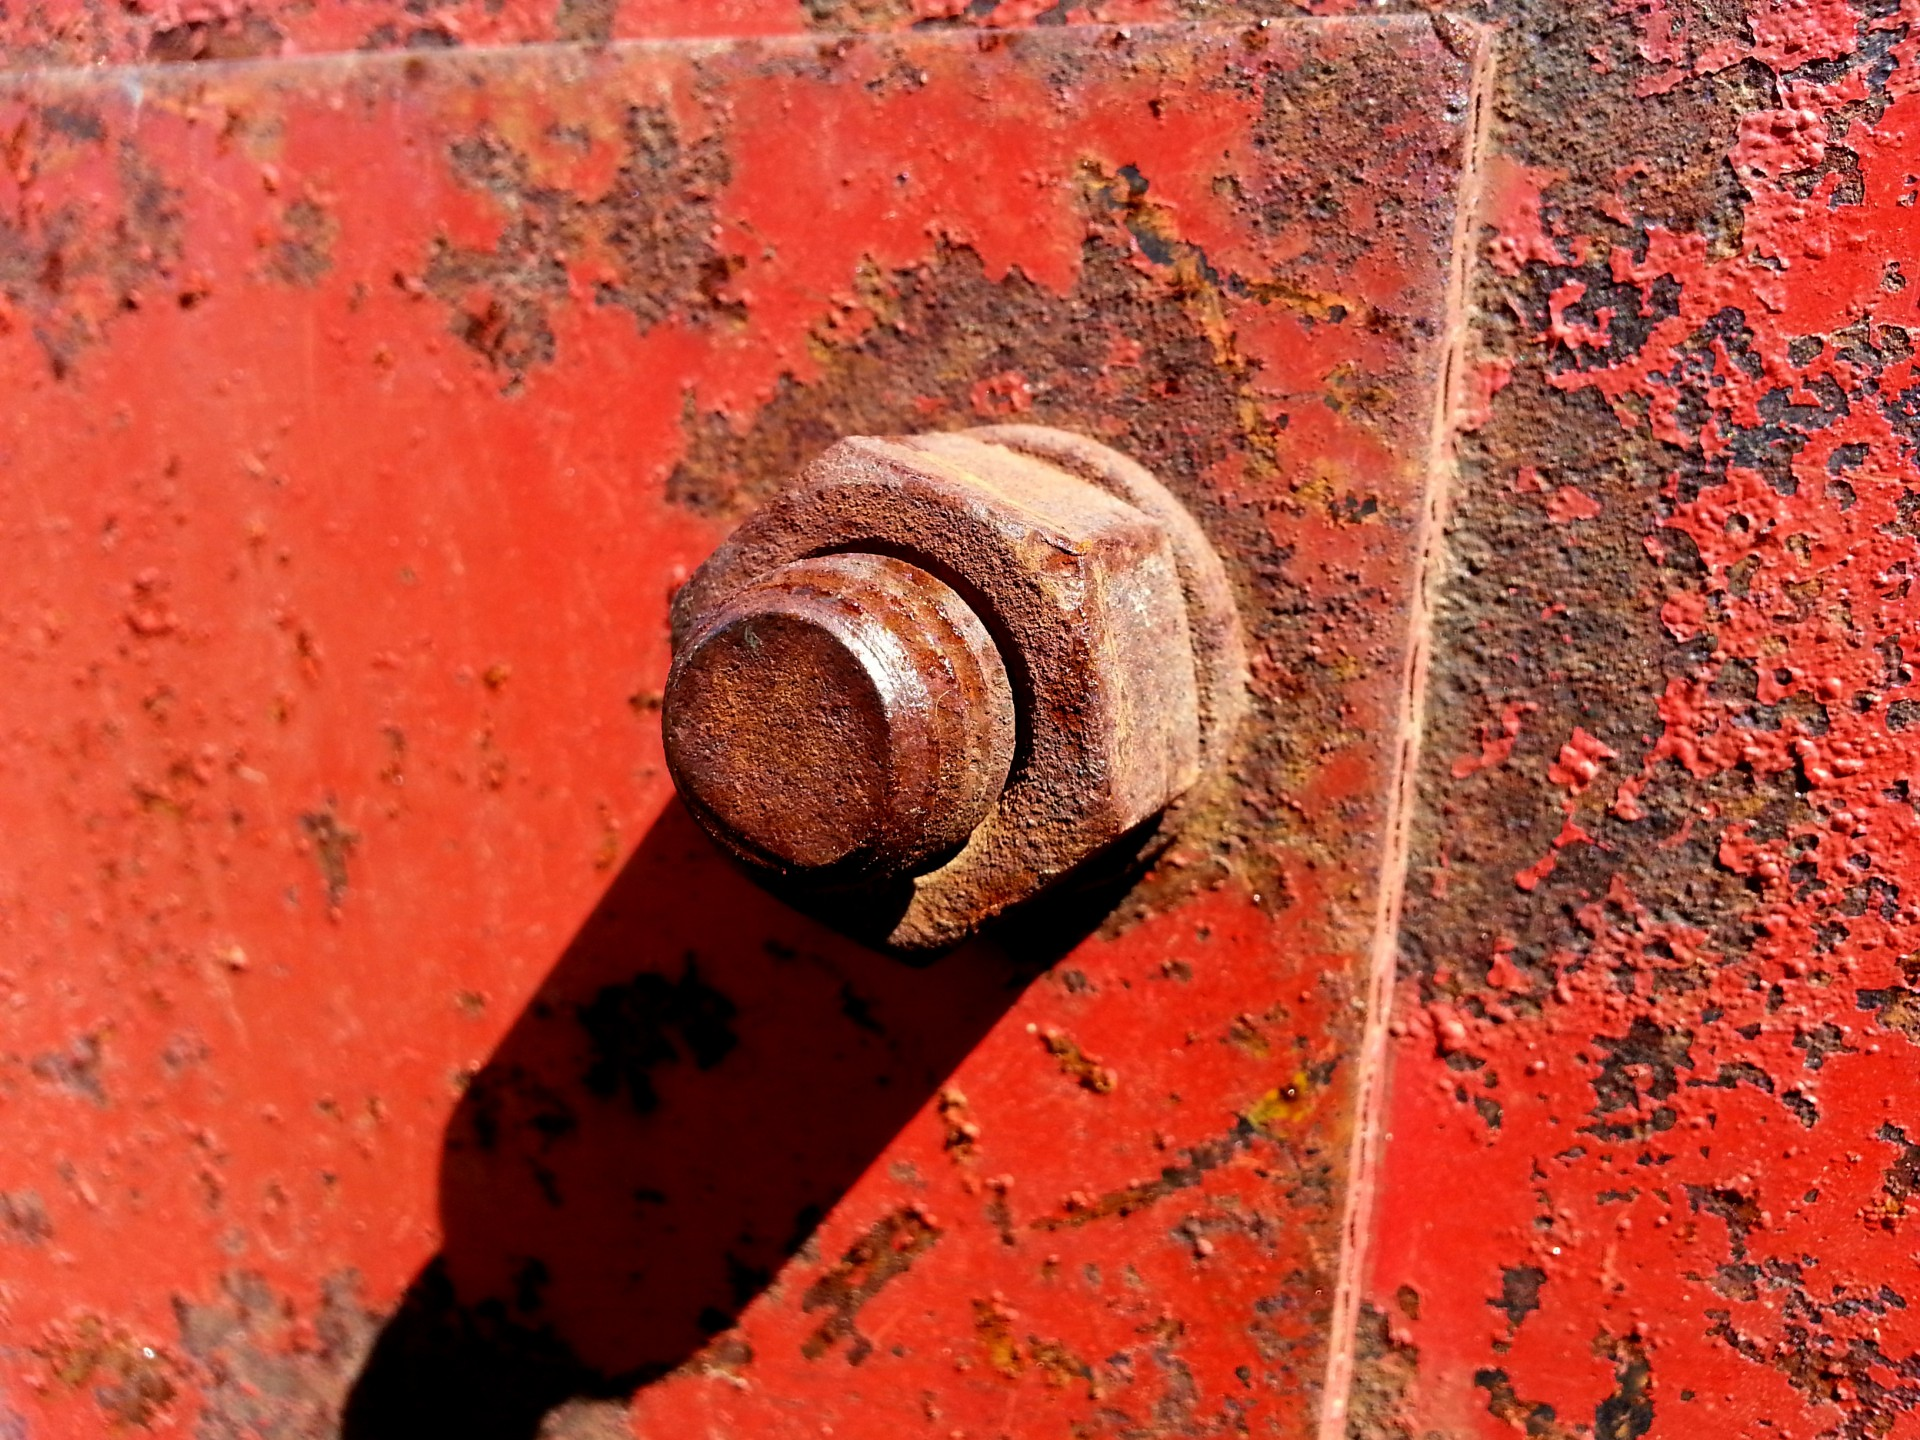 Old Rusty Screw Free Stock Photo - Public Domain Pictures